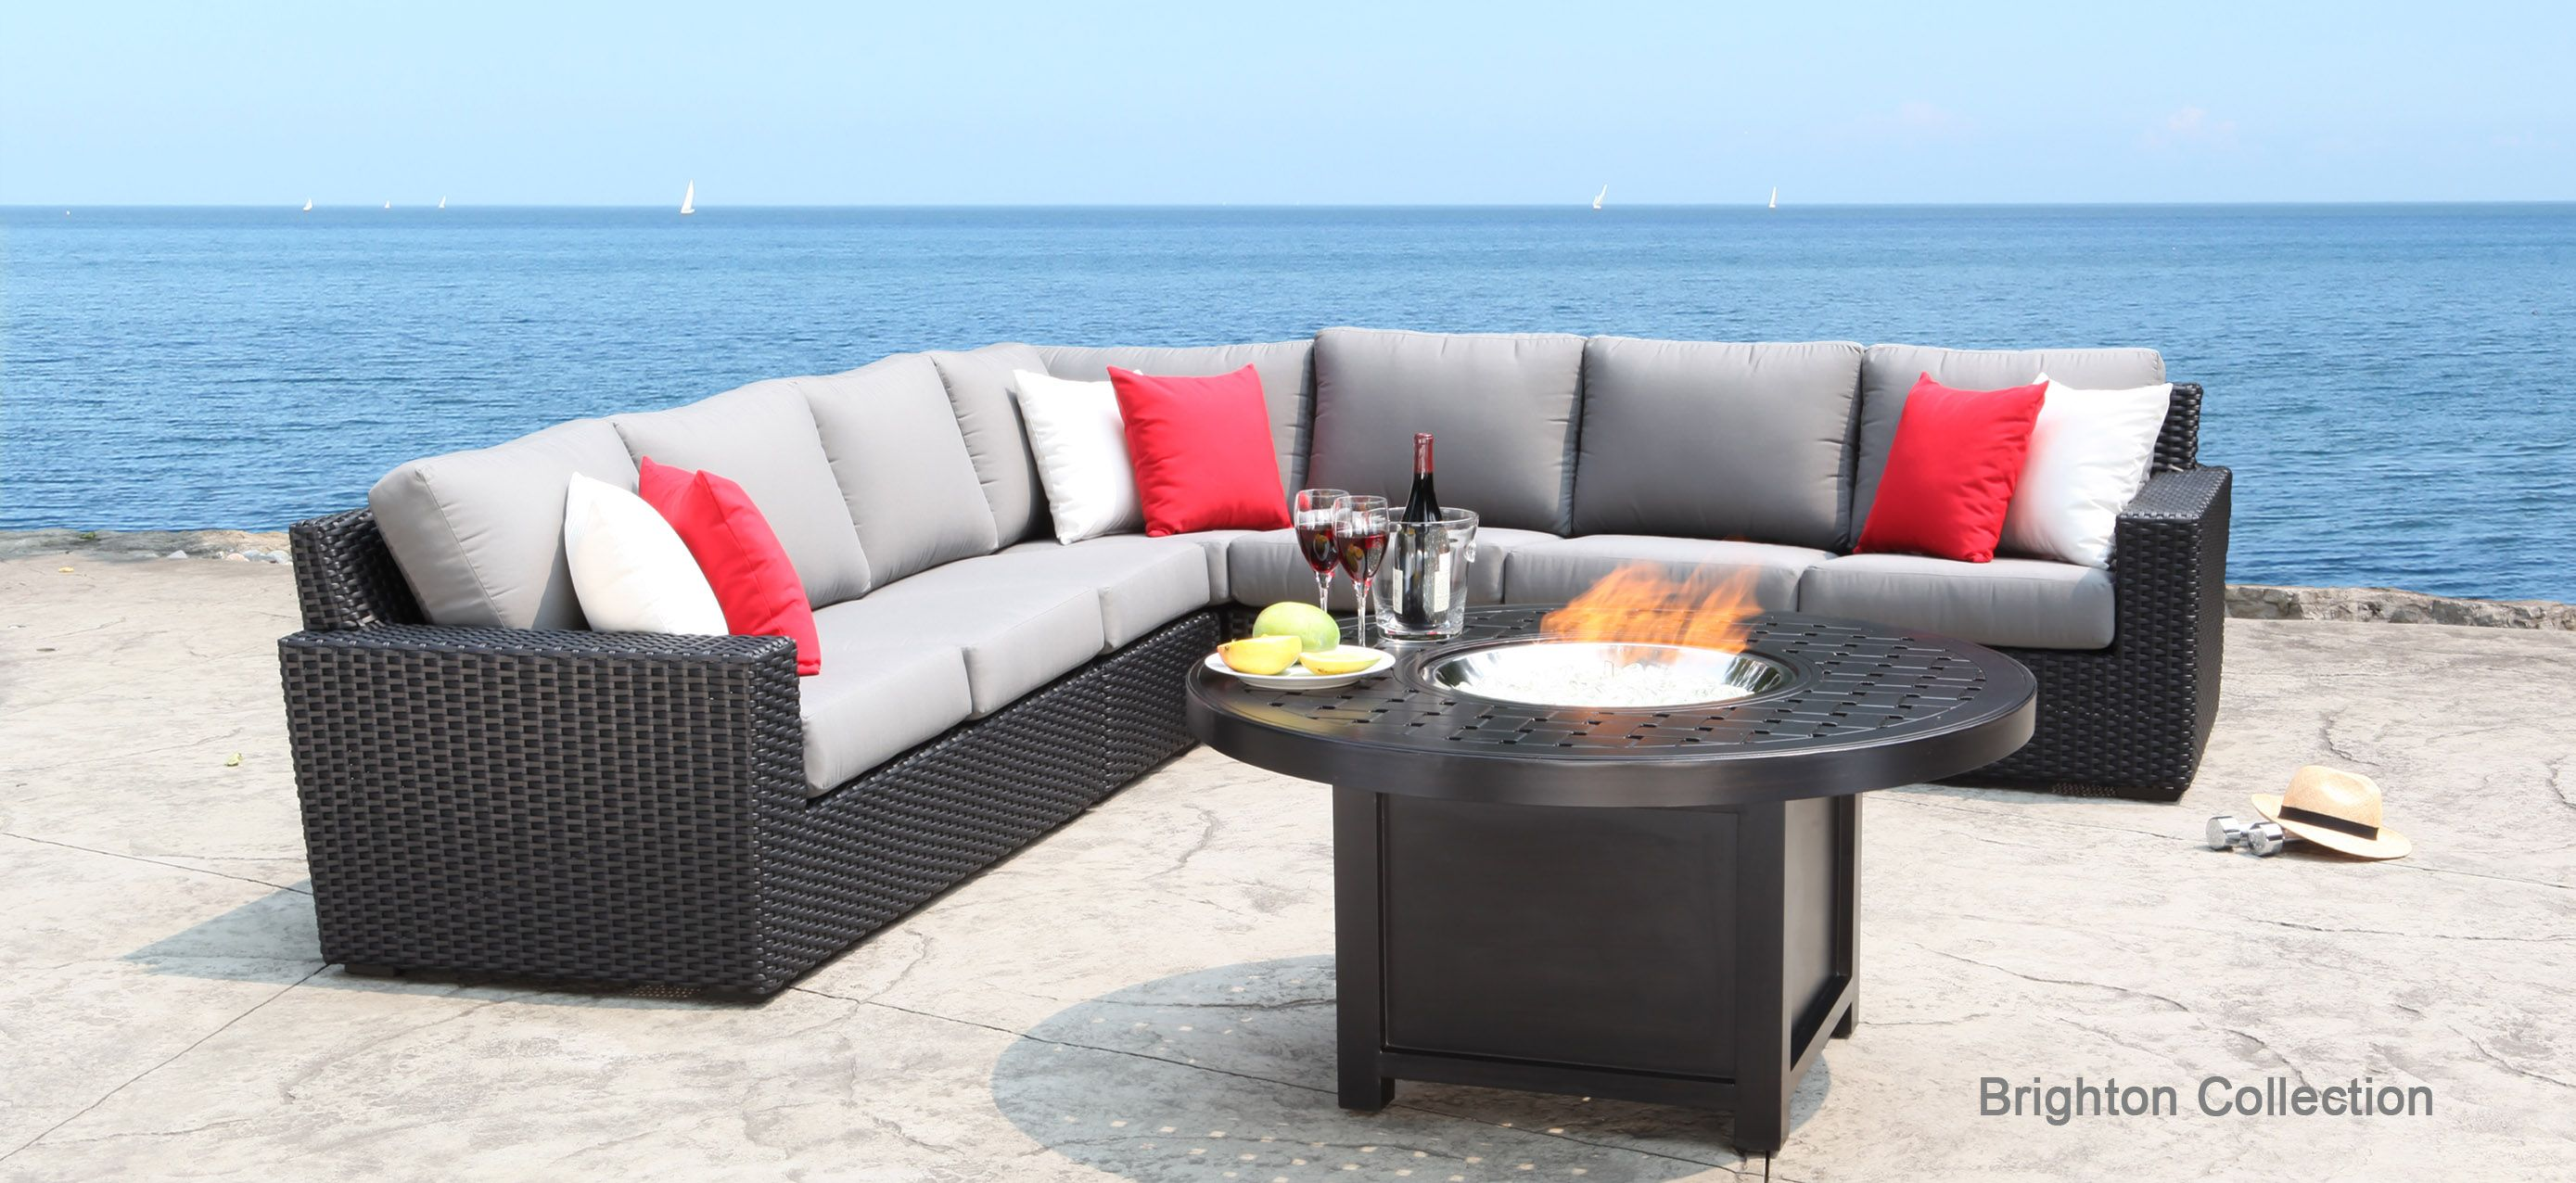 Outdoor Material For Patio Furniture - [peenmedia.com]